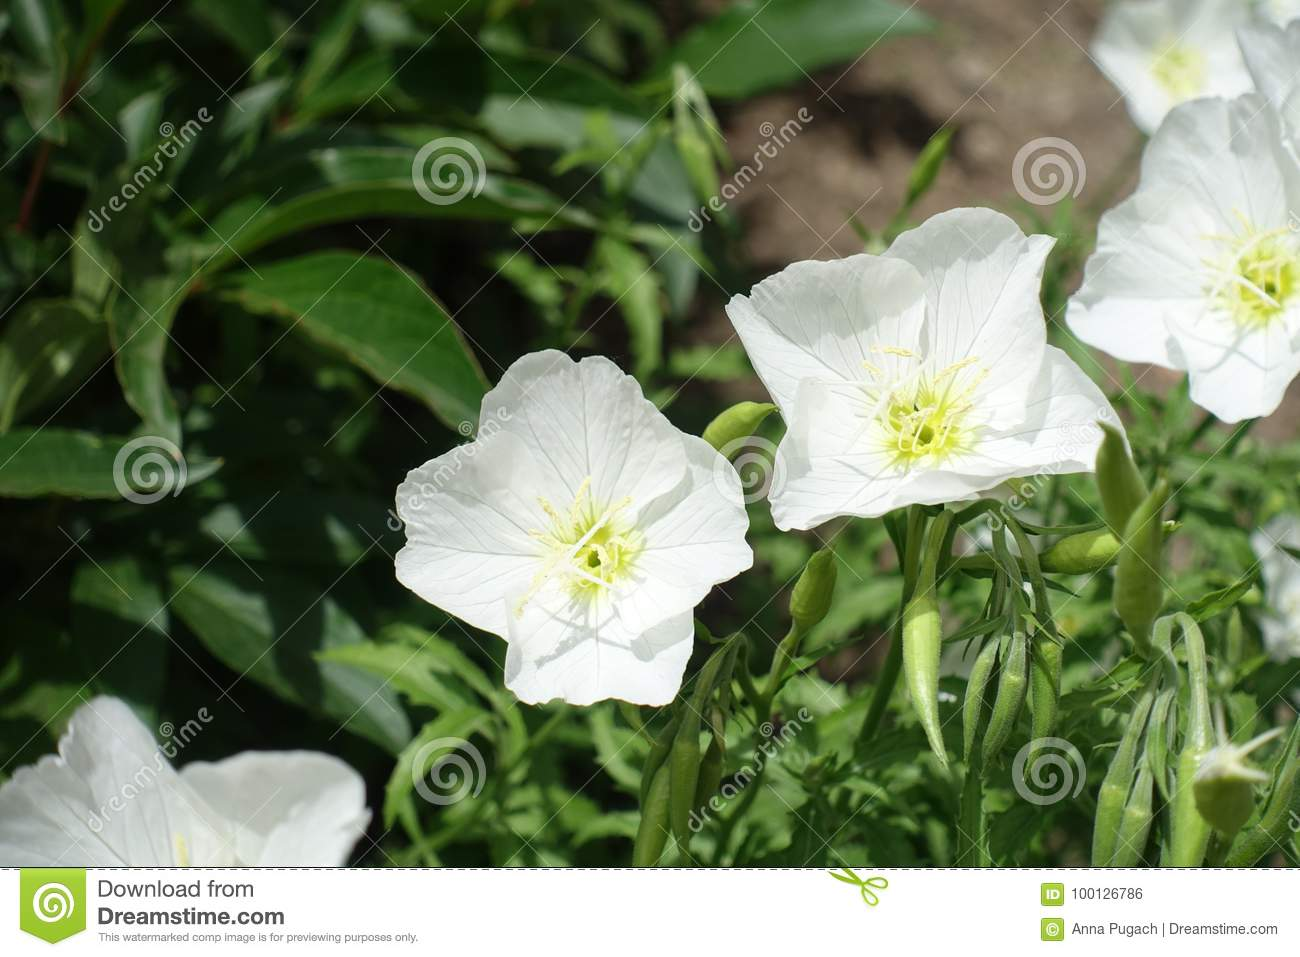 Closeup of white flowers of pinkladies stock photo image of download closeup of white flowers of pinkladies stock photo image of flowerbed inflorescence mightylinksfo